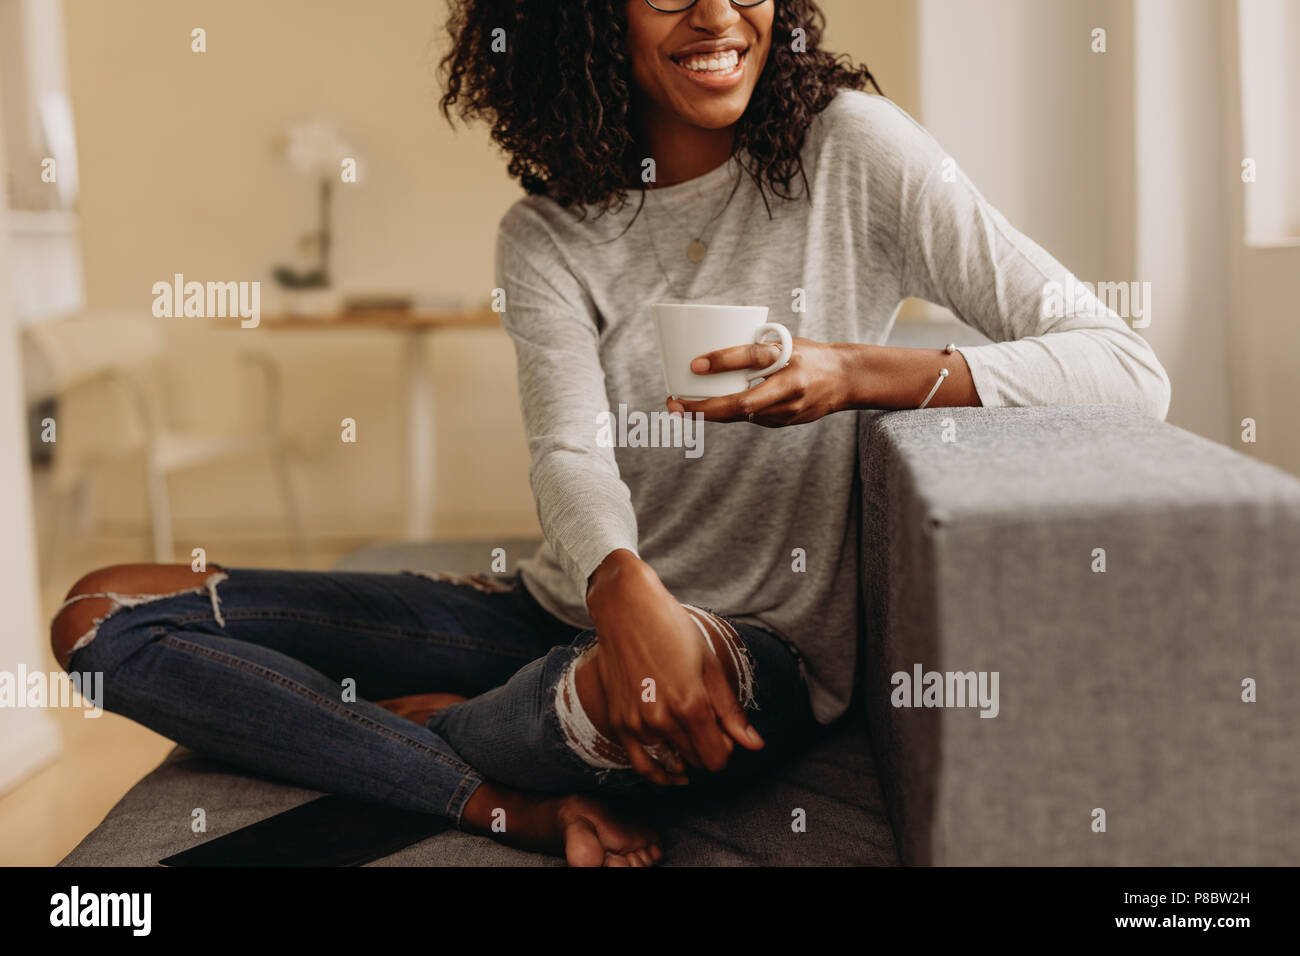 Smiling woman in fashionable torn jeans holding a coffee cup relaxing at home. Woman sitting with legs crossed on sofa at home drinking coffee and loo - Stock Image